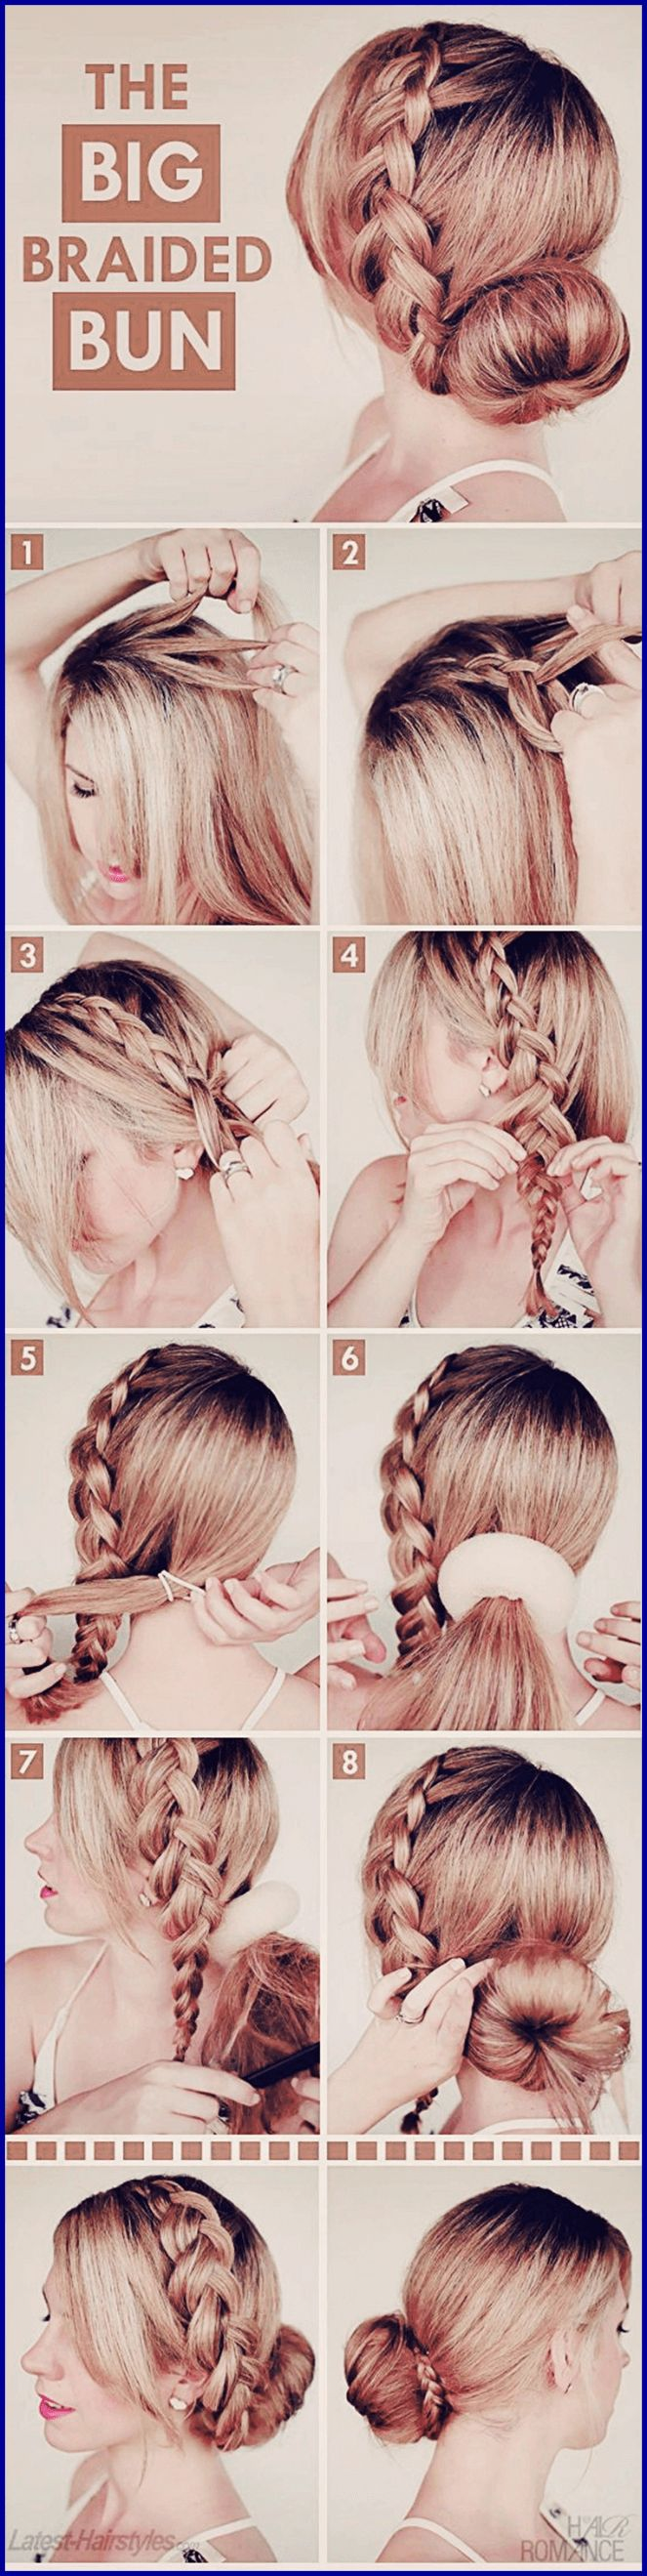 No more spending hundreds of dollars hiring a stylist when you can create this easy big braided bun yourself.